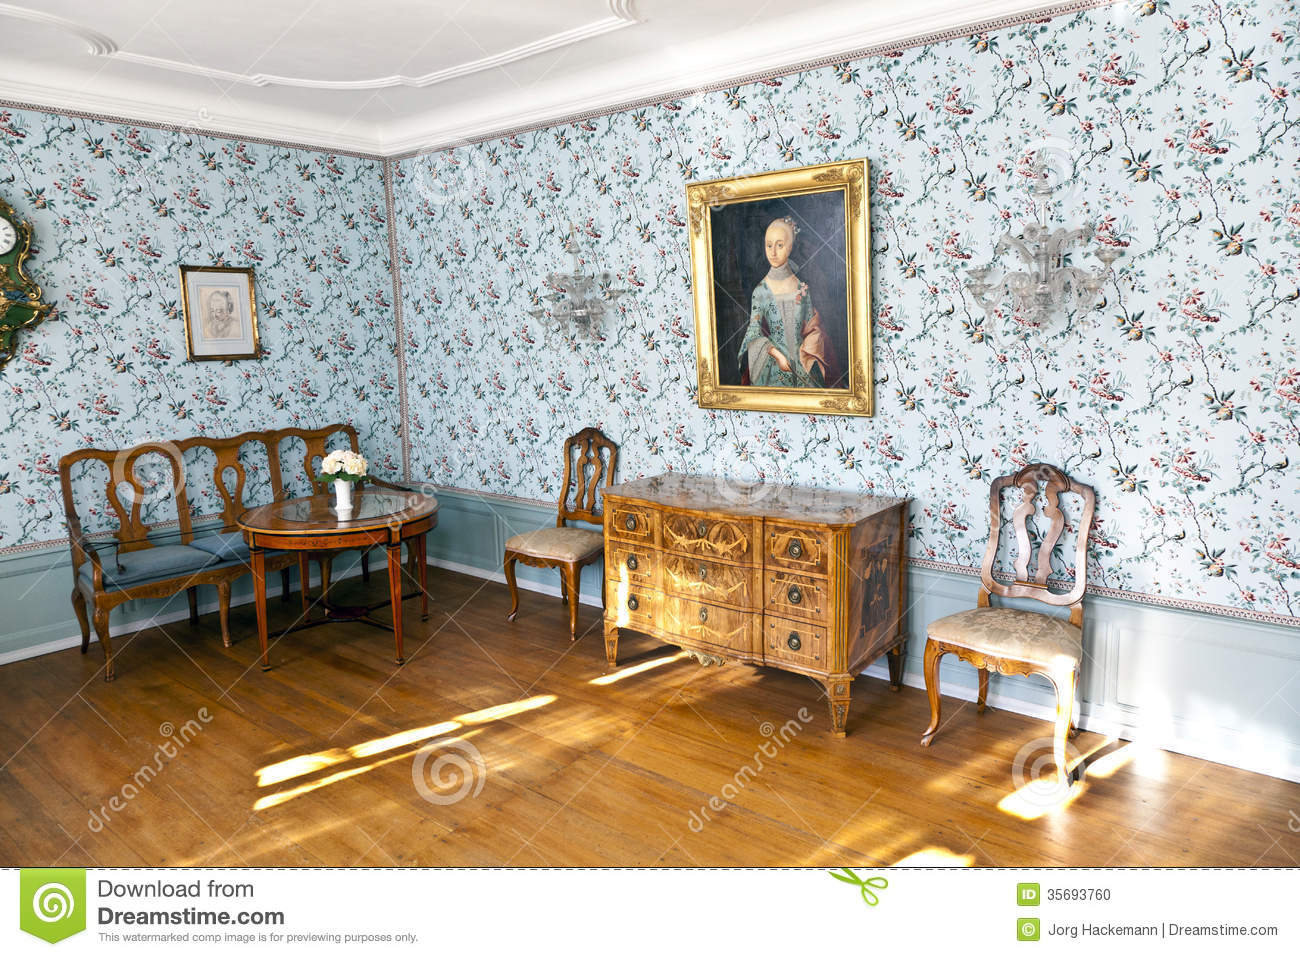 cornelia goethes raum im goethe haus in frankfurt am main redaktionelles bild bild von. Black Bedroom Furniture Sets. Home Design Ideas